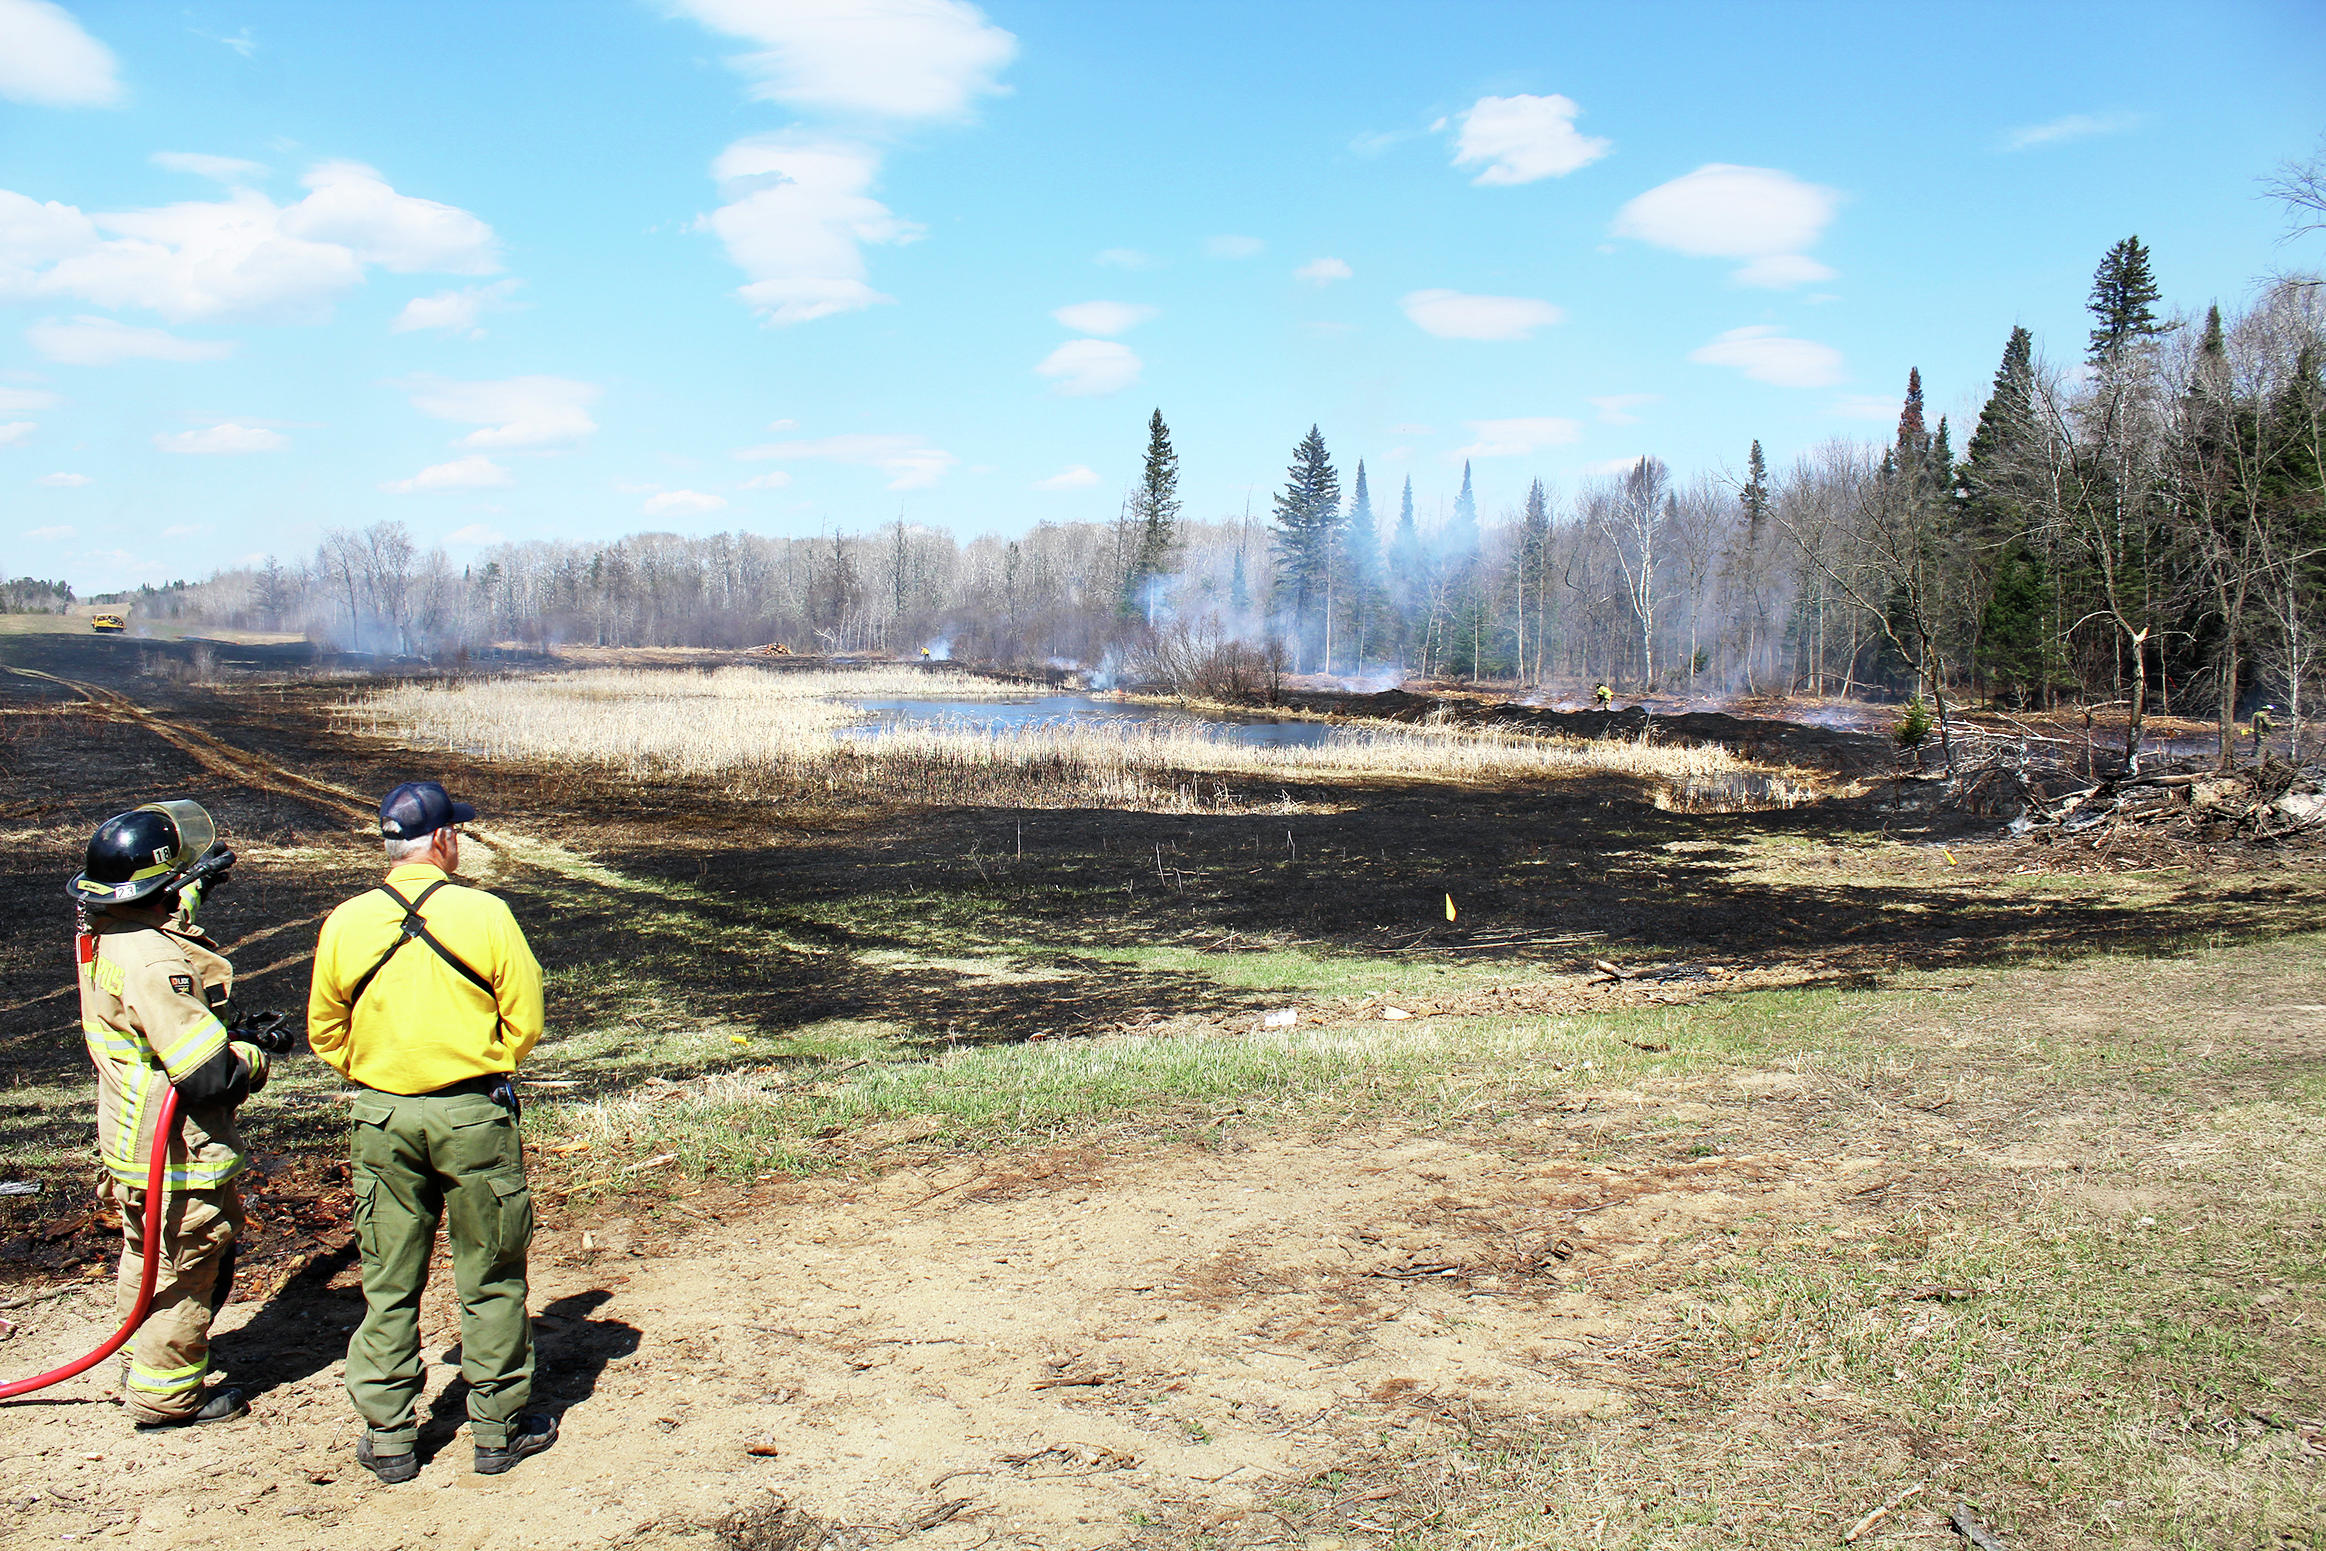 Approximately 12-14 Park Rapids firefighters and DNR foresters responded Thursday to a wildland fire on Impression Road. As containment efforts continued, Assistant Fire Chief Ben Cumber said the cause of the fire had not been determined, but it looked like an unattended brush fire. (Robin Fish/Enterprise)